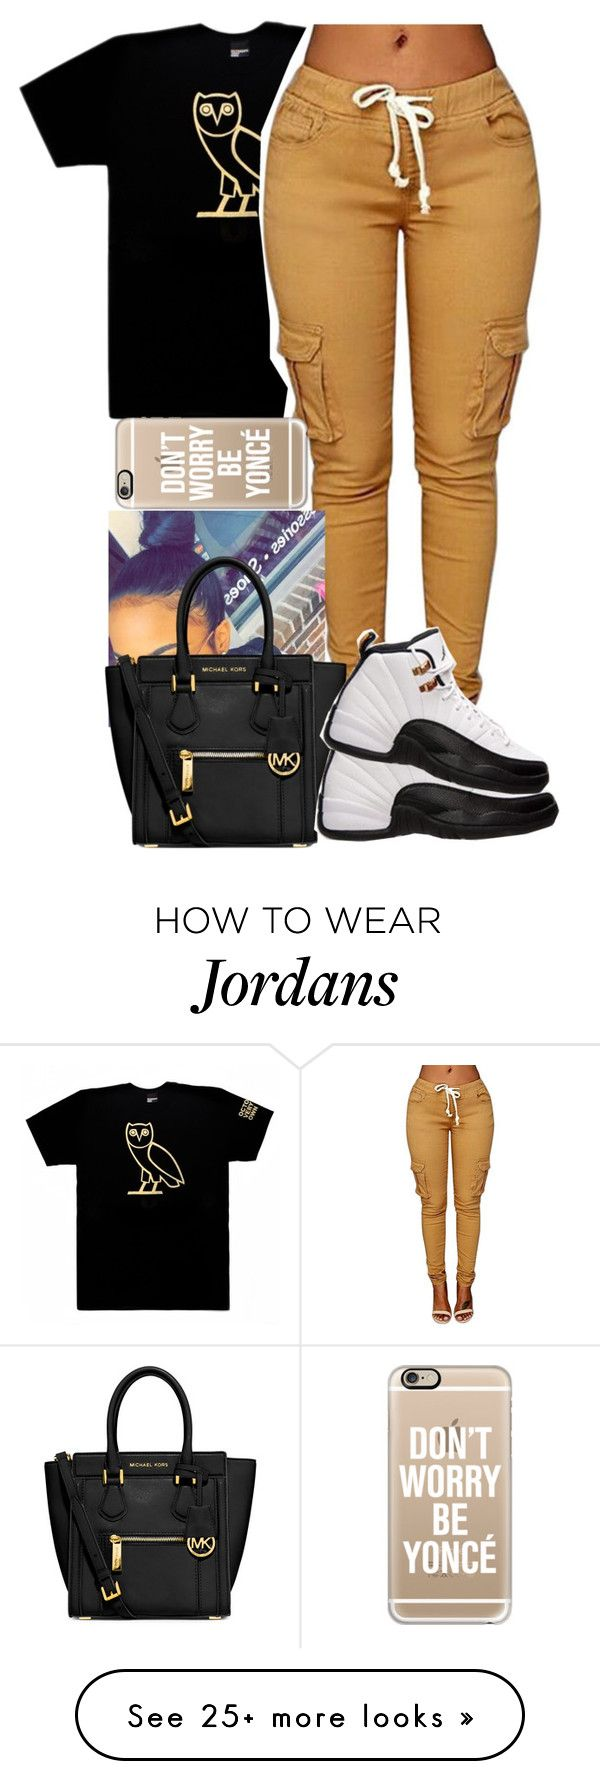 ~game changer by nya-hayward on Polyvore featuring Octobers Very Own, Casetify, MICHAEL Michael Kors and Retrò